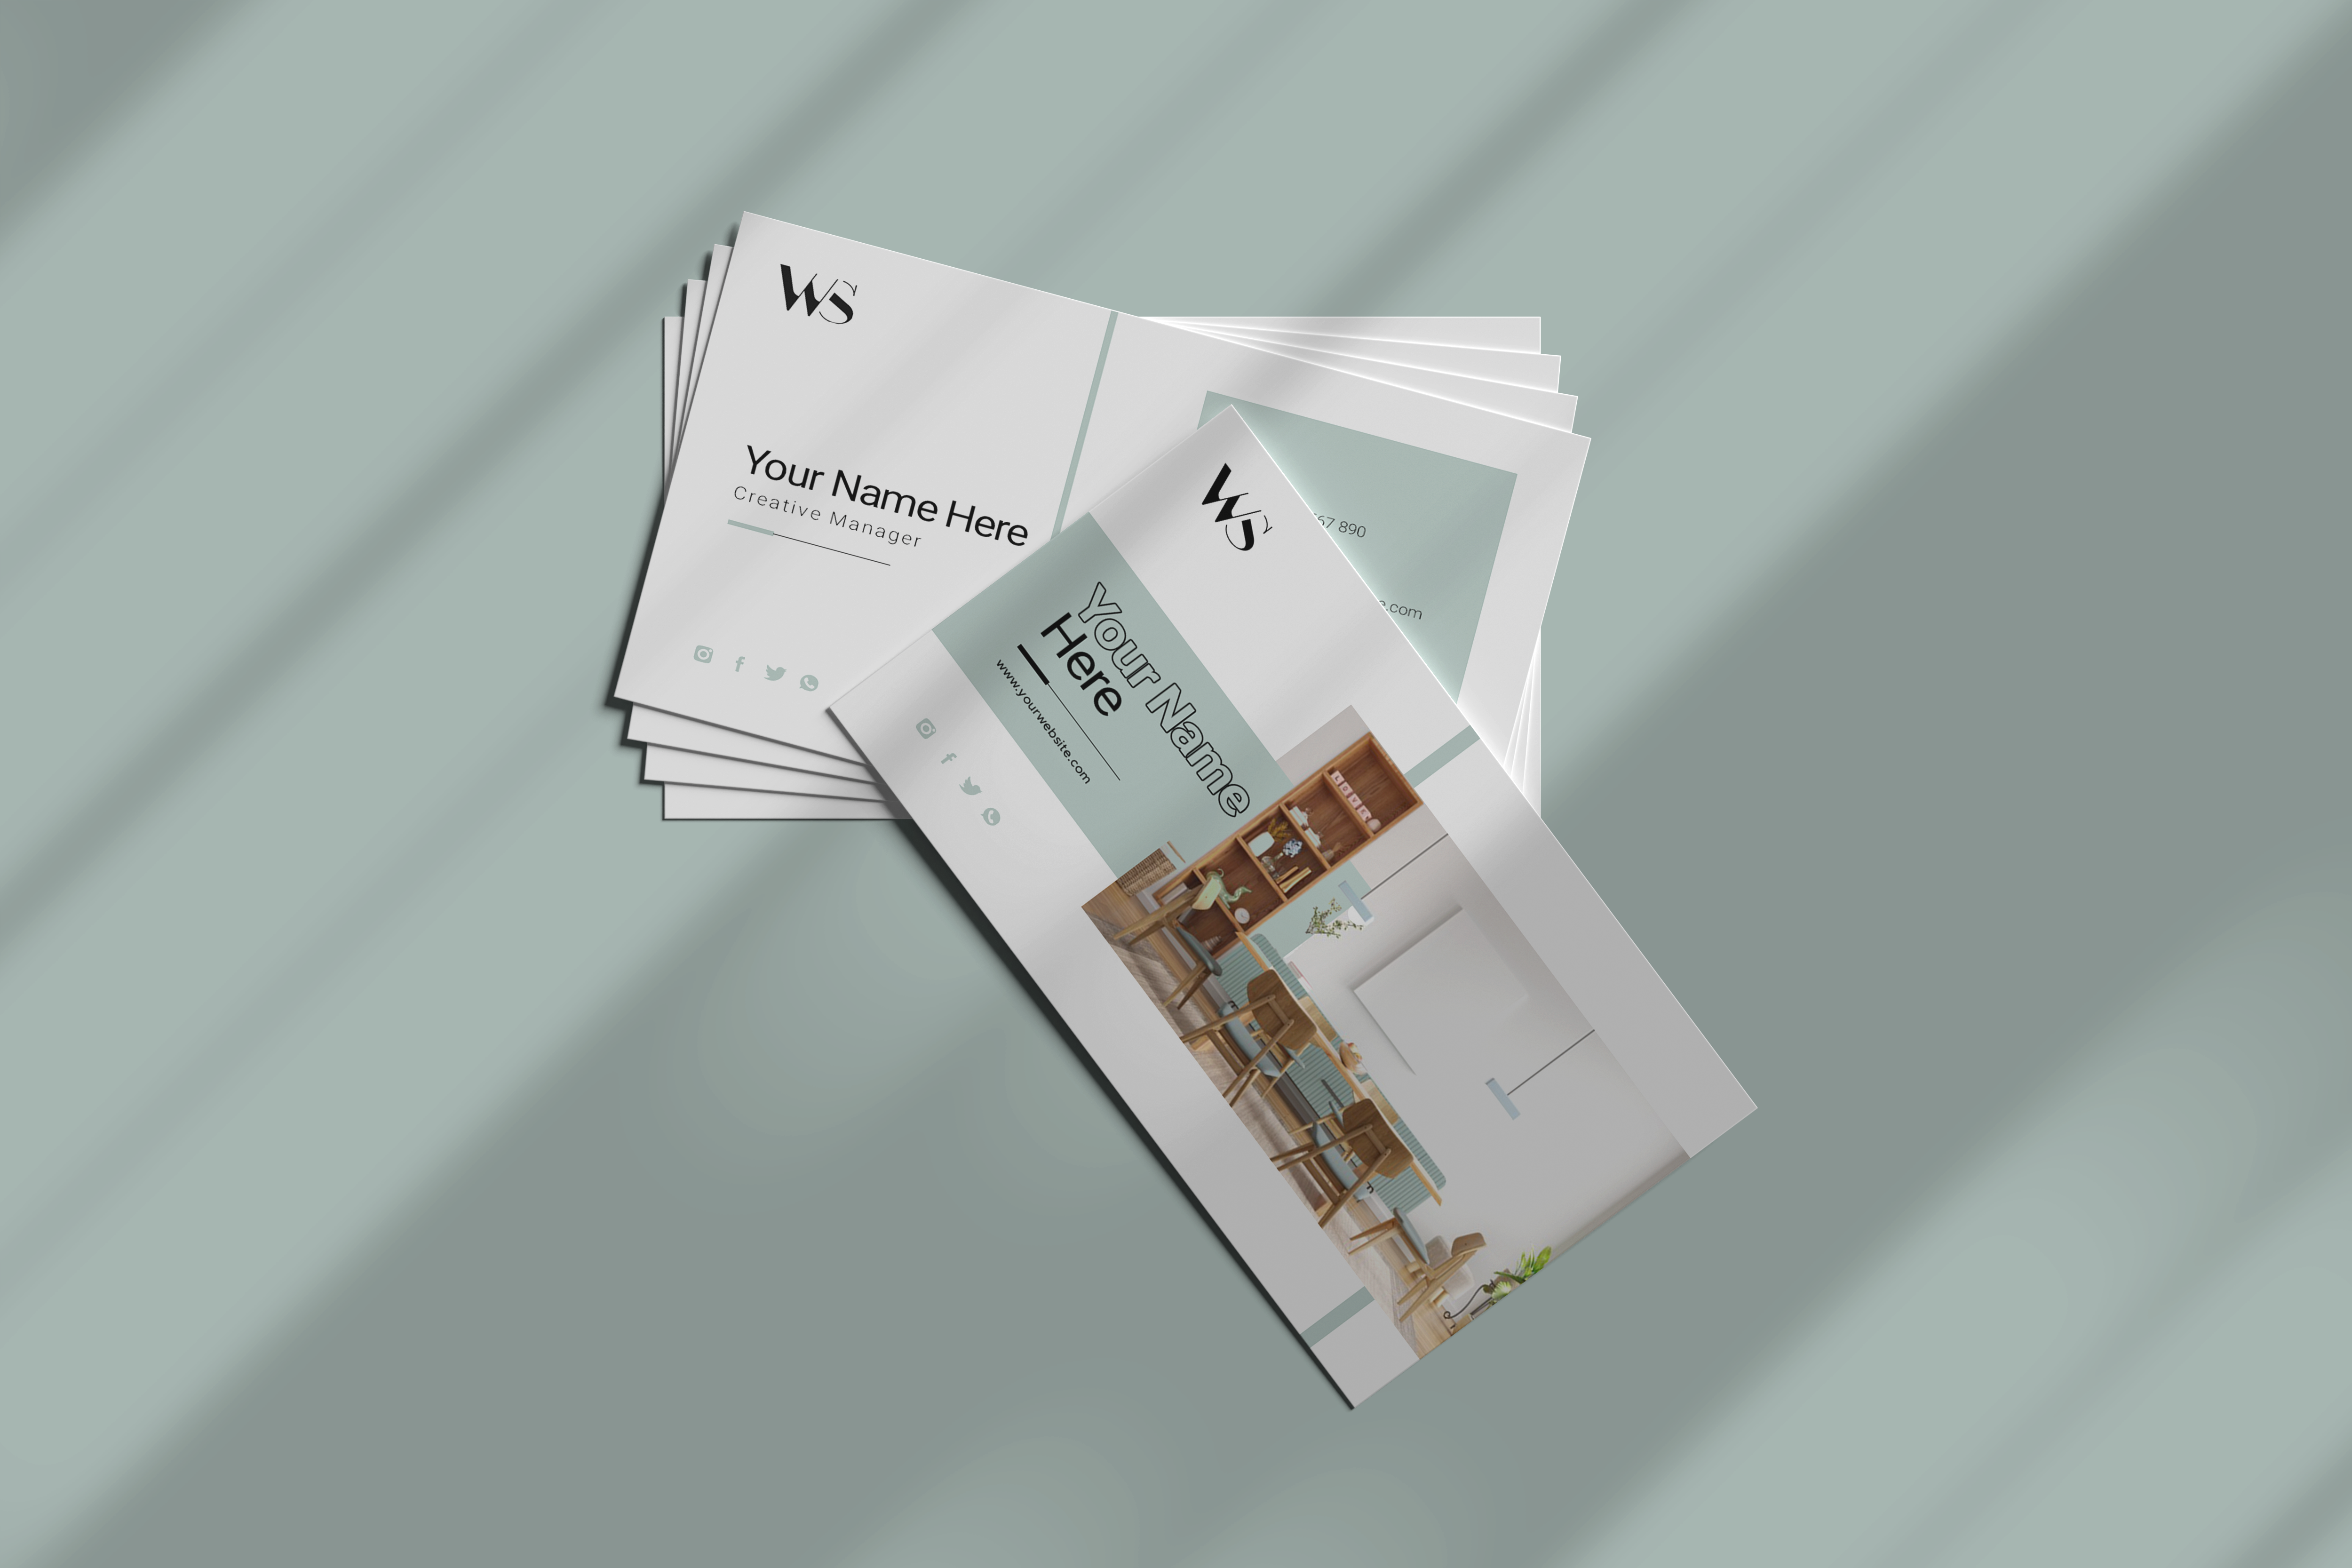 Business card for furniture and home decor company Free Psd